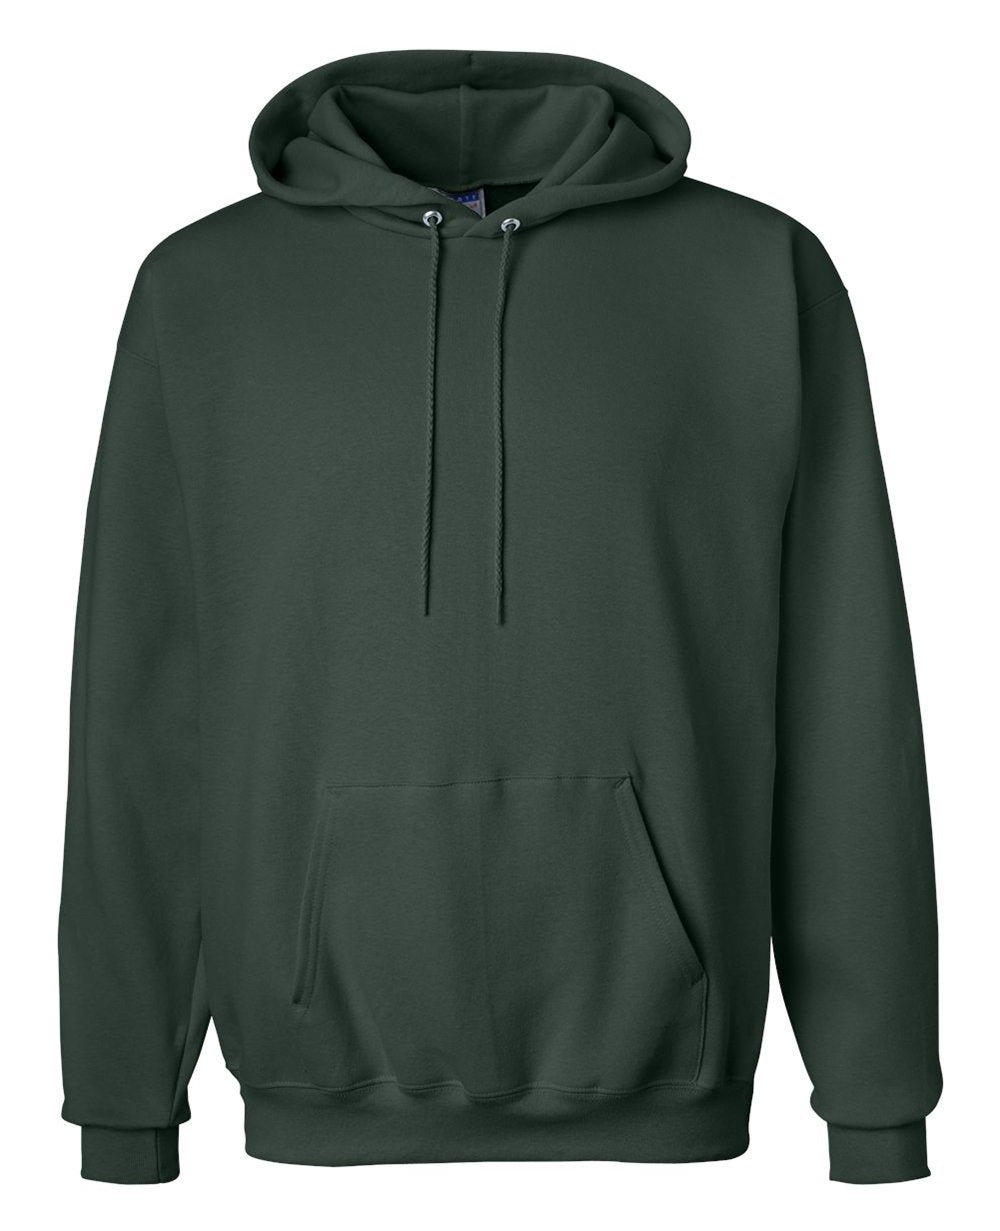 Pullover Hoodies in Deep Forest